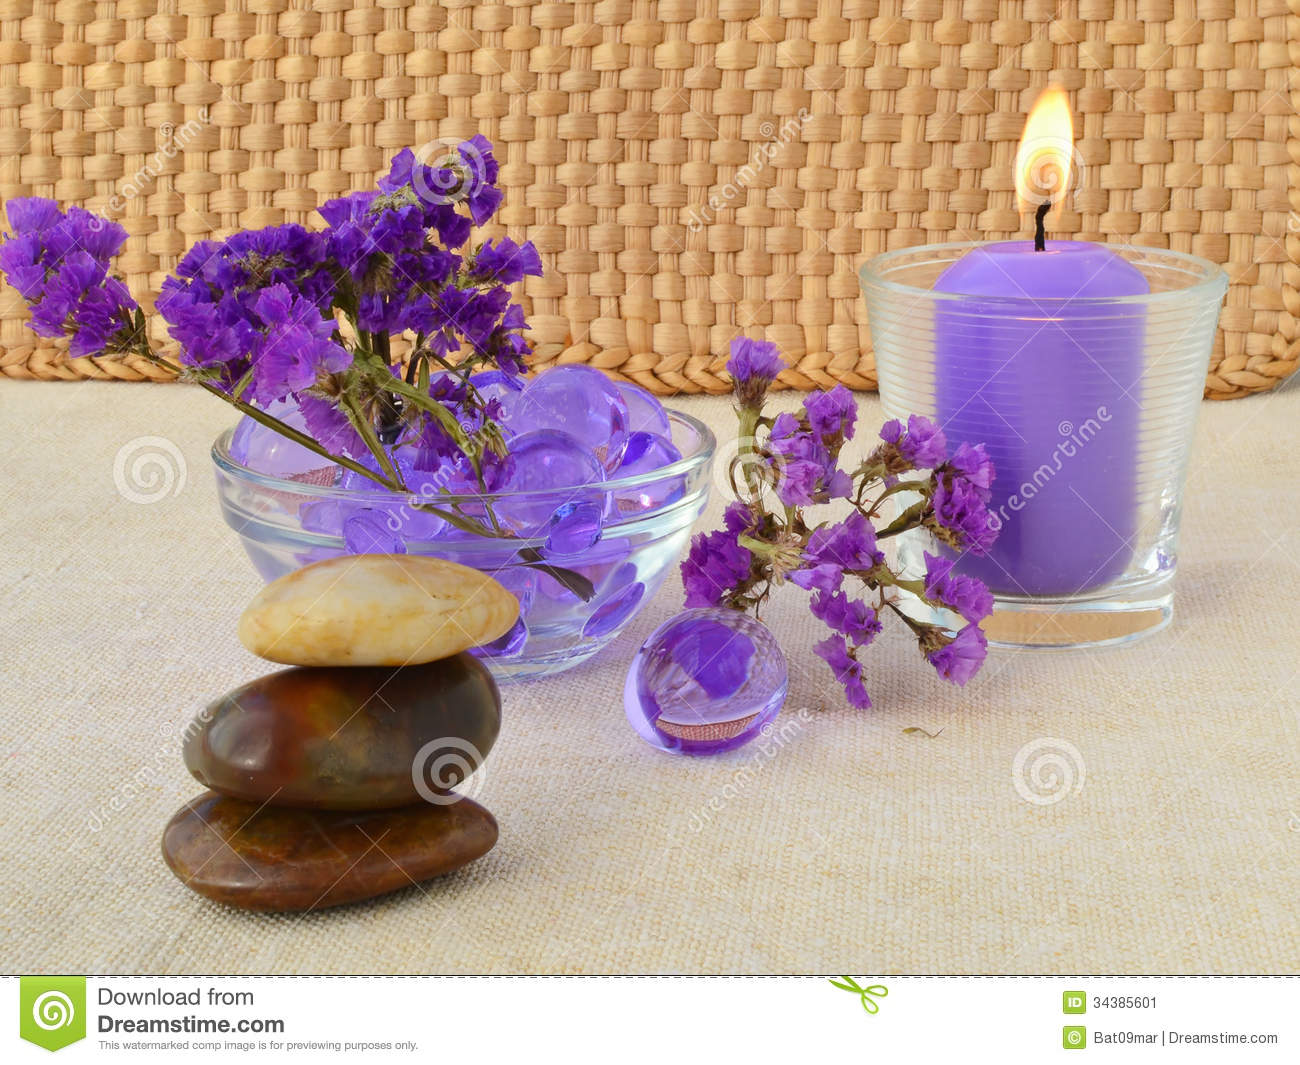 Candle And Purple Flowers Stock Image - Image: 34385601